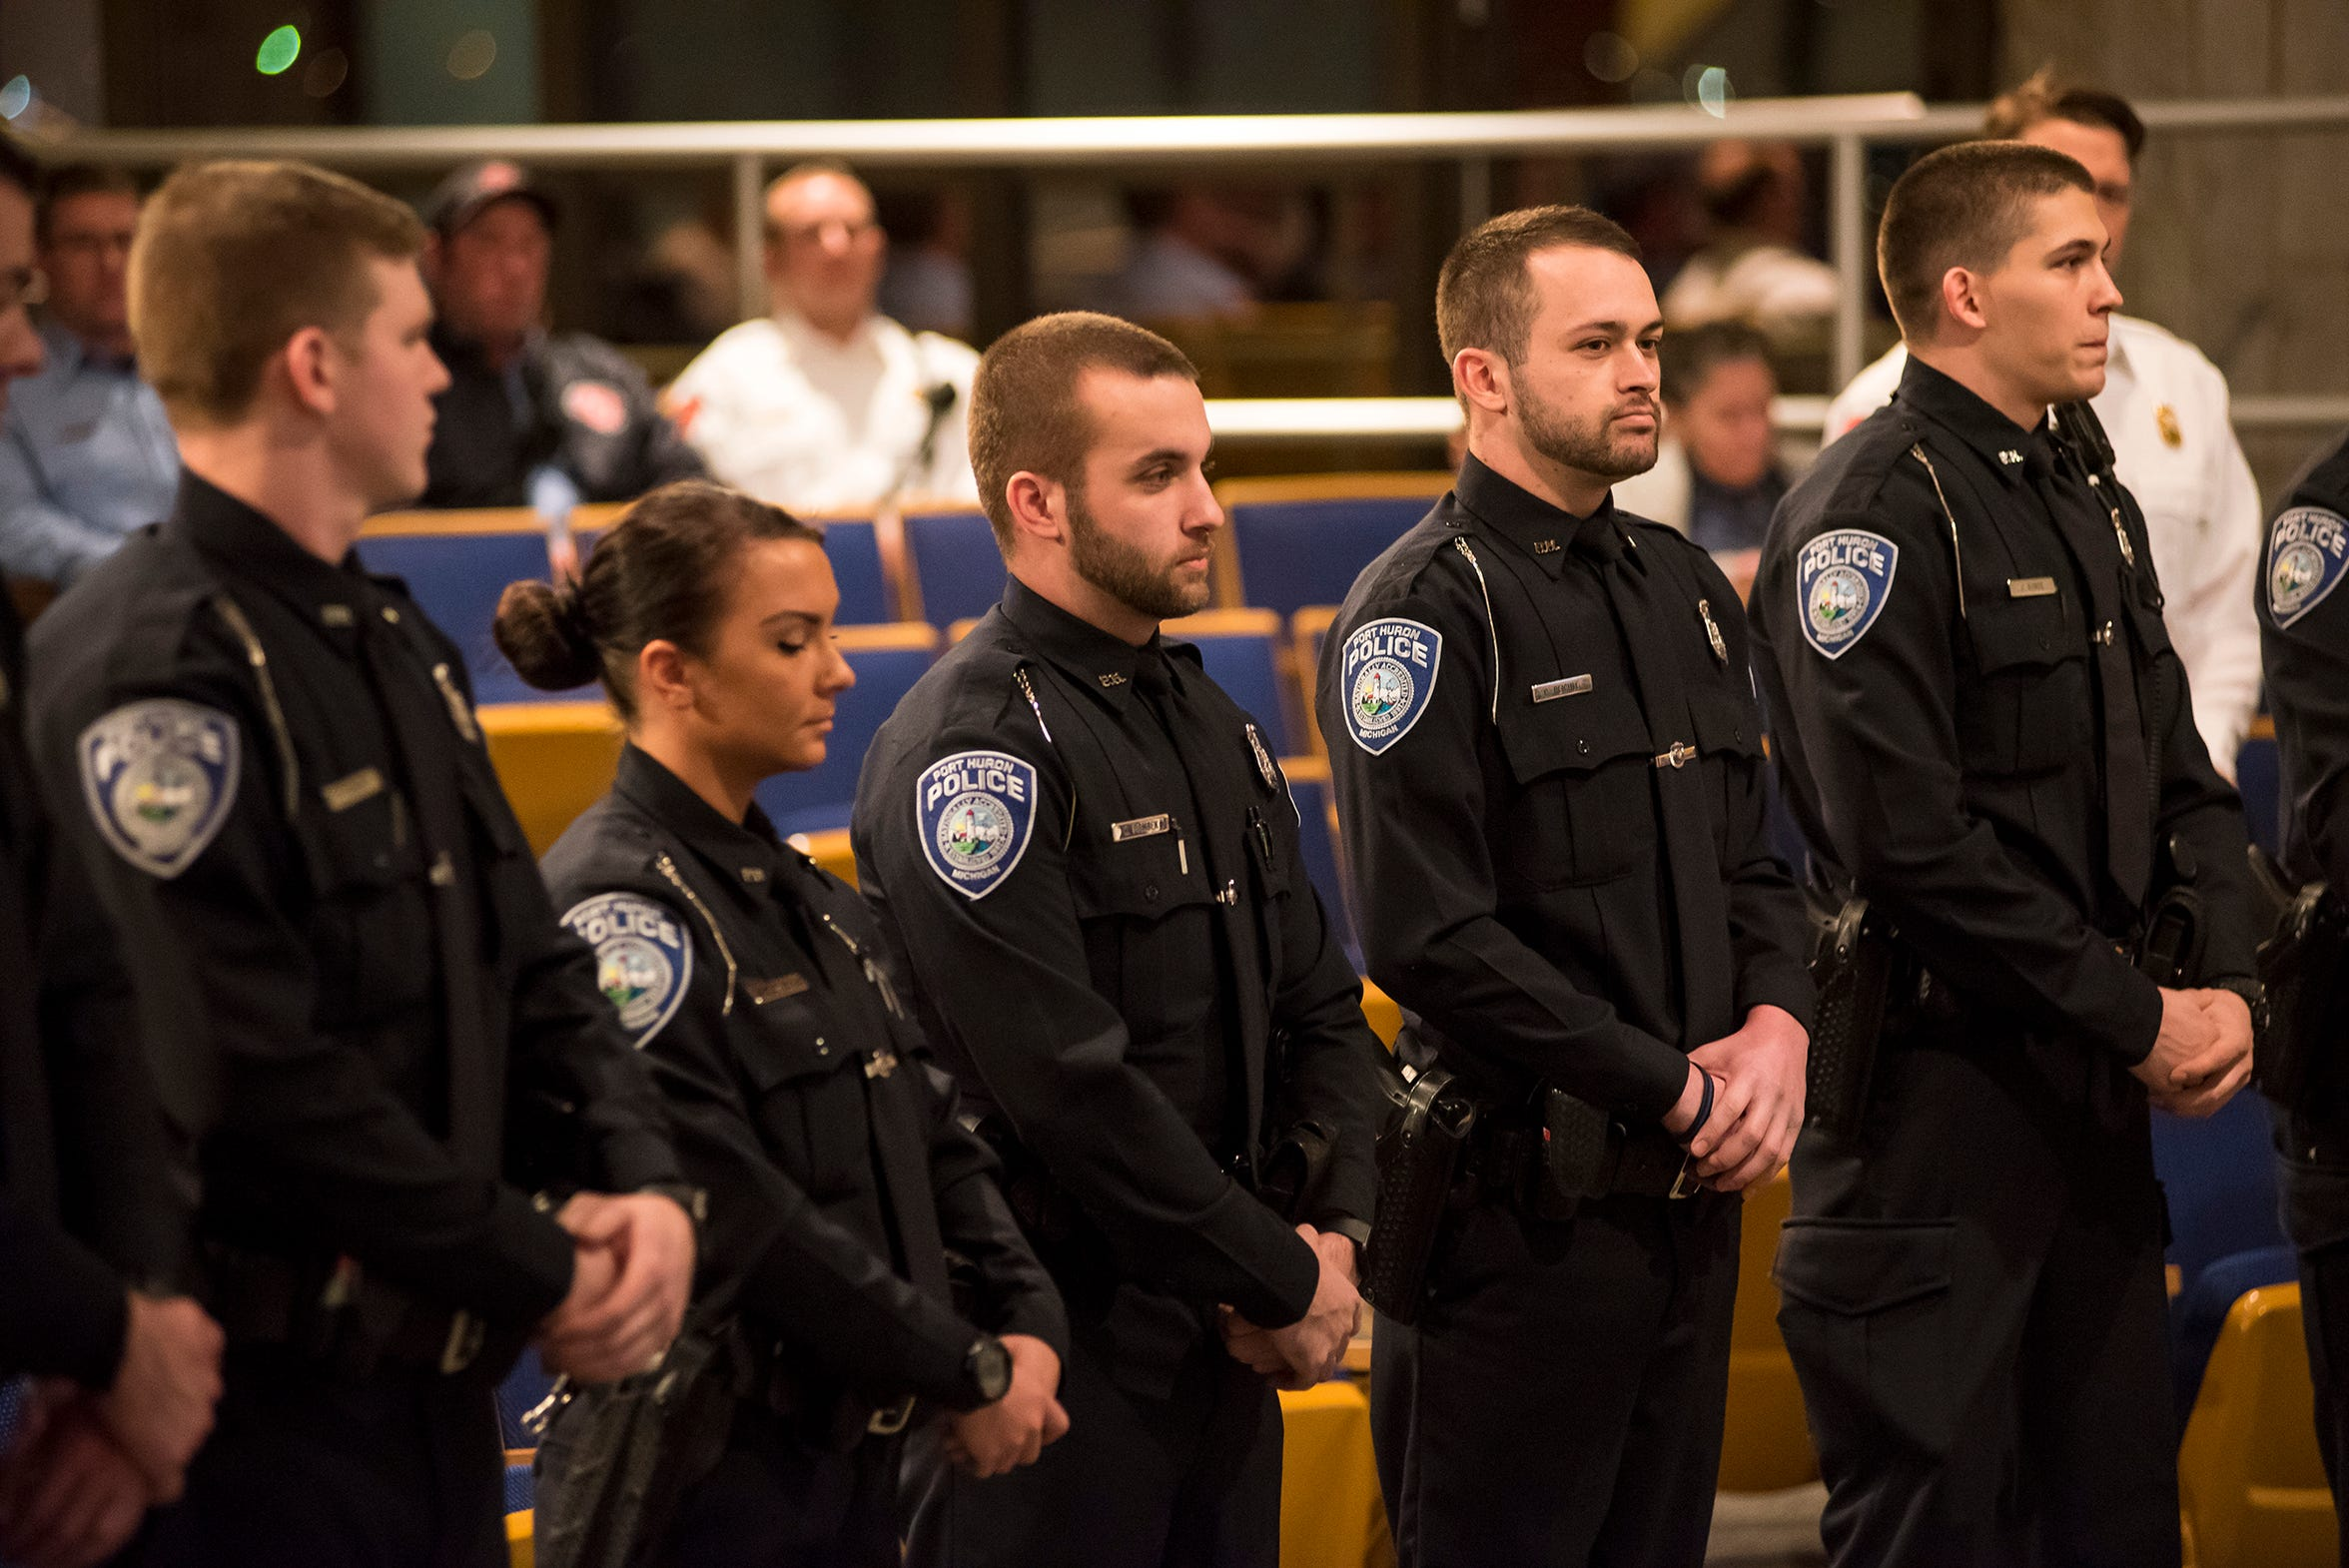 Several new Port Huron Police recruits stand while being introduced at a City Council meeting on Monday, Jan. 14, 2019.